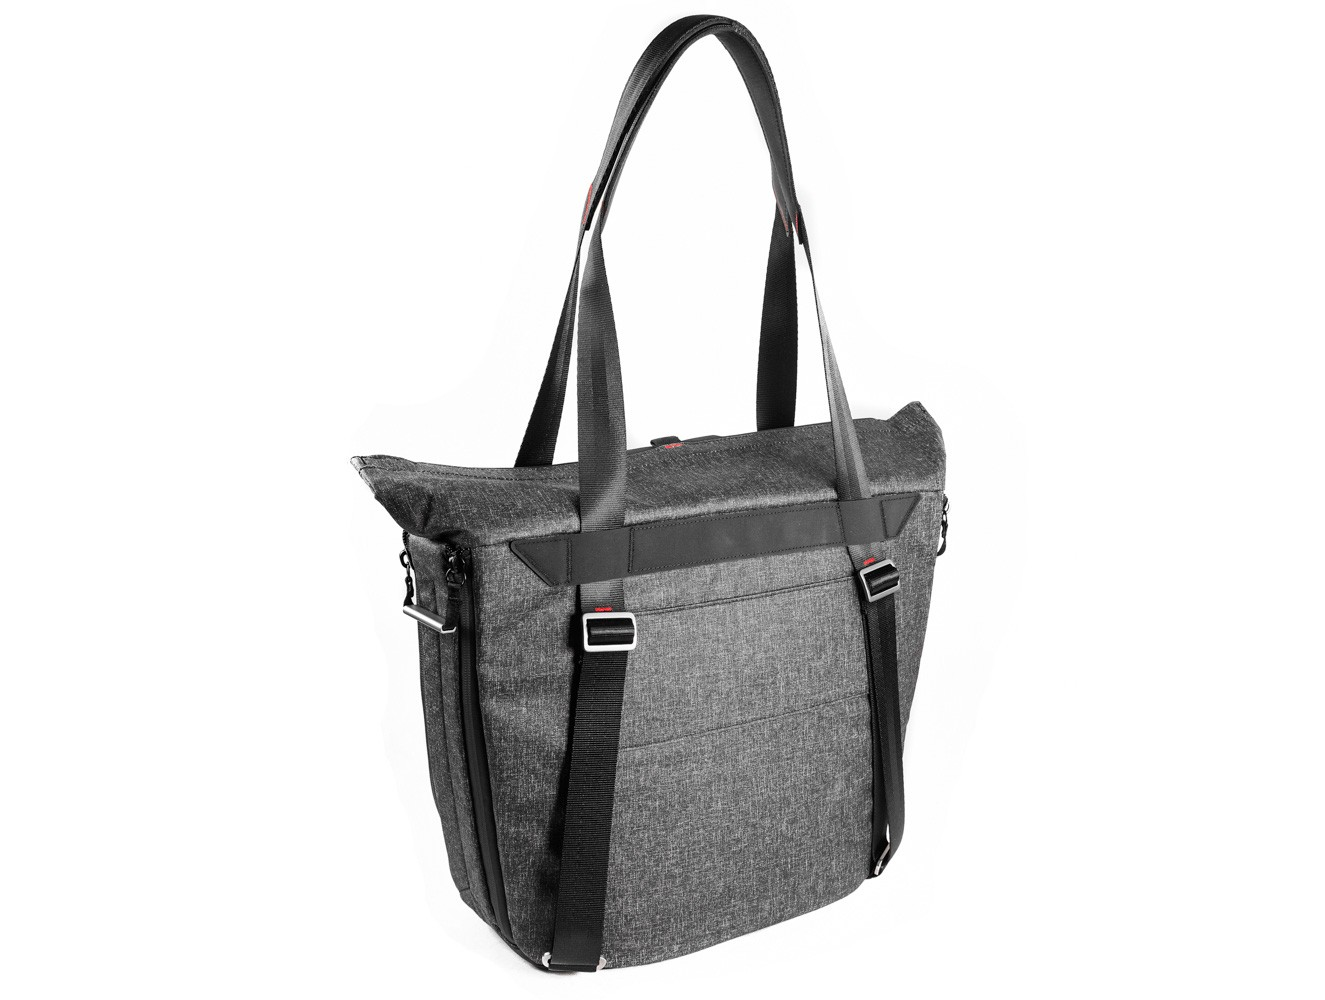 e0b3643efda5 PEAK DESIGN -Tote Bag